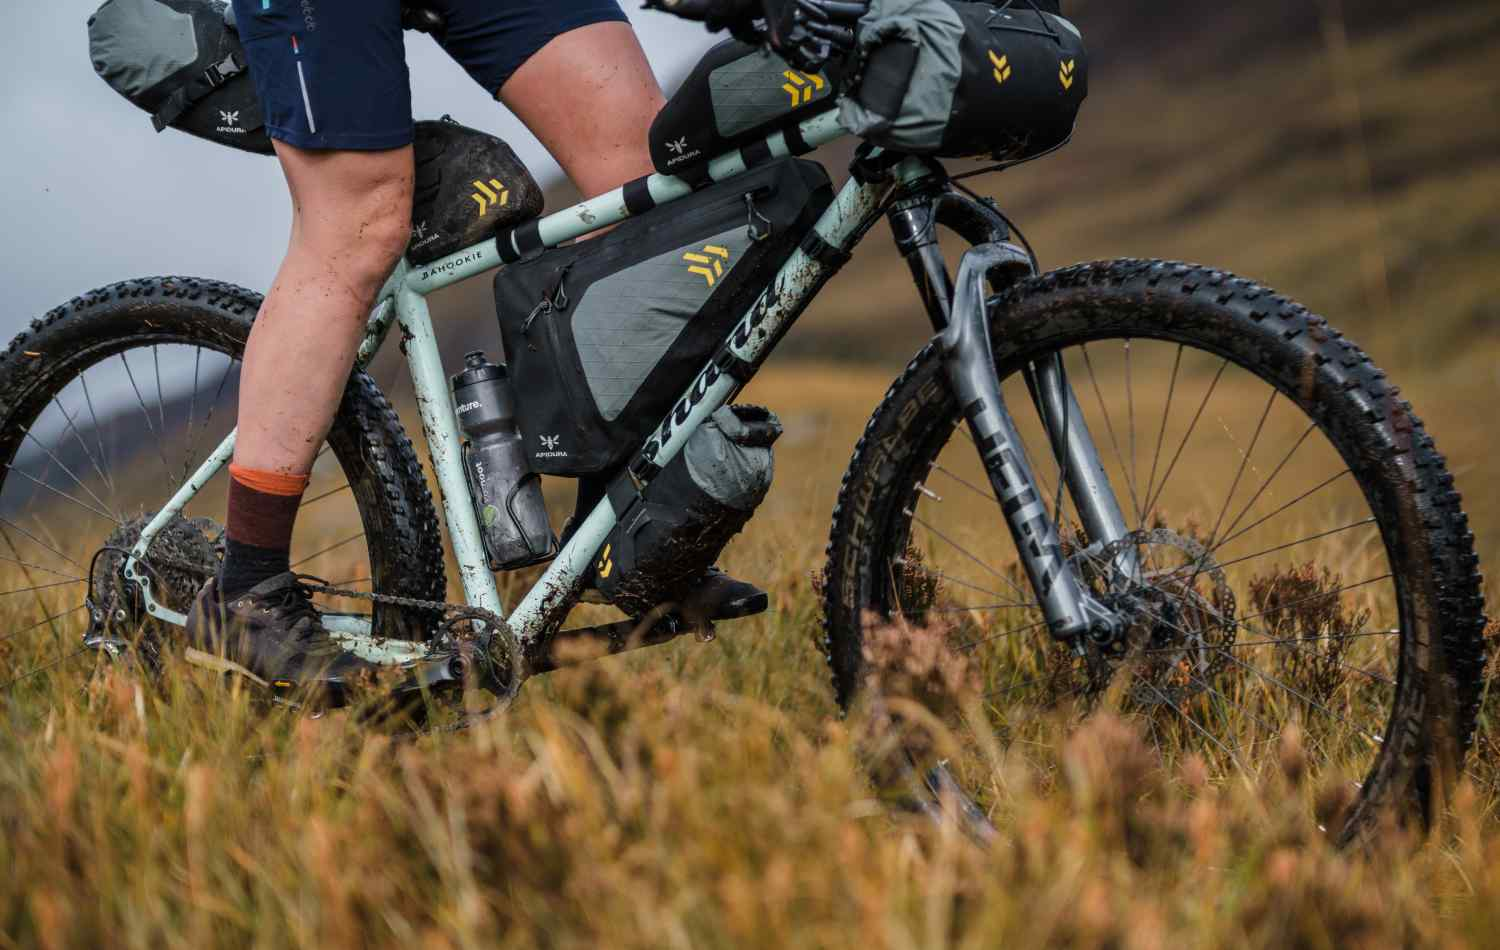 Jenny Tough's Shand Bahookie with a full complement of Backcountry bikepacking bags